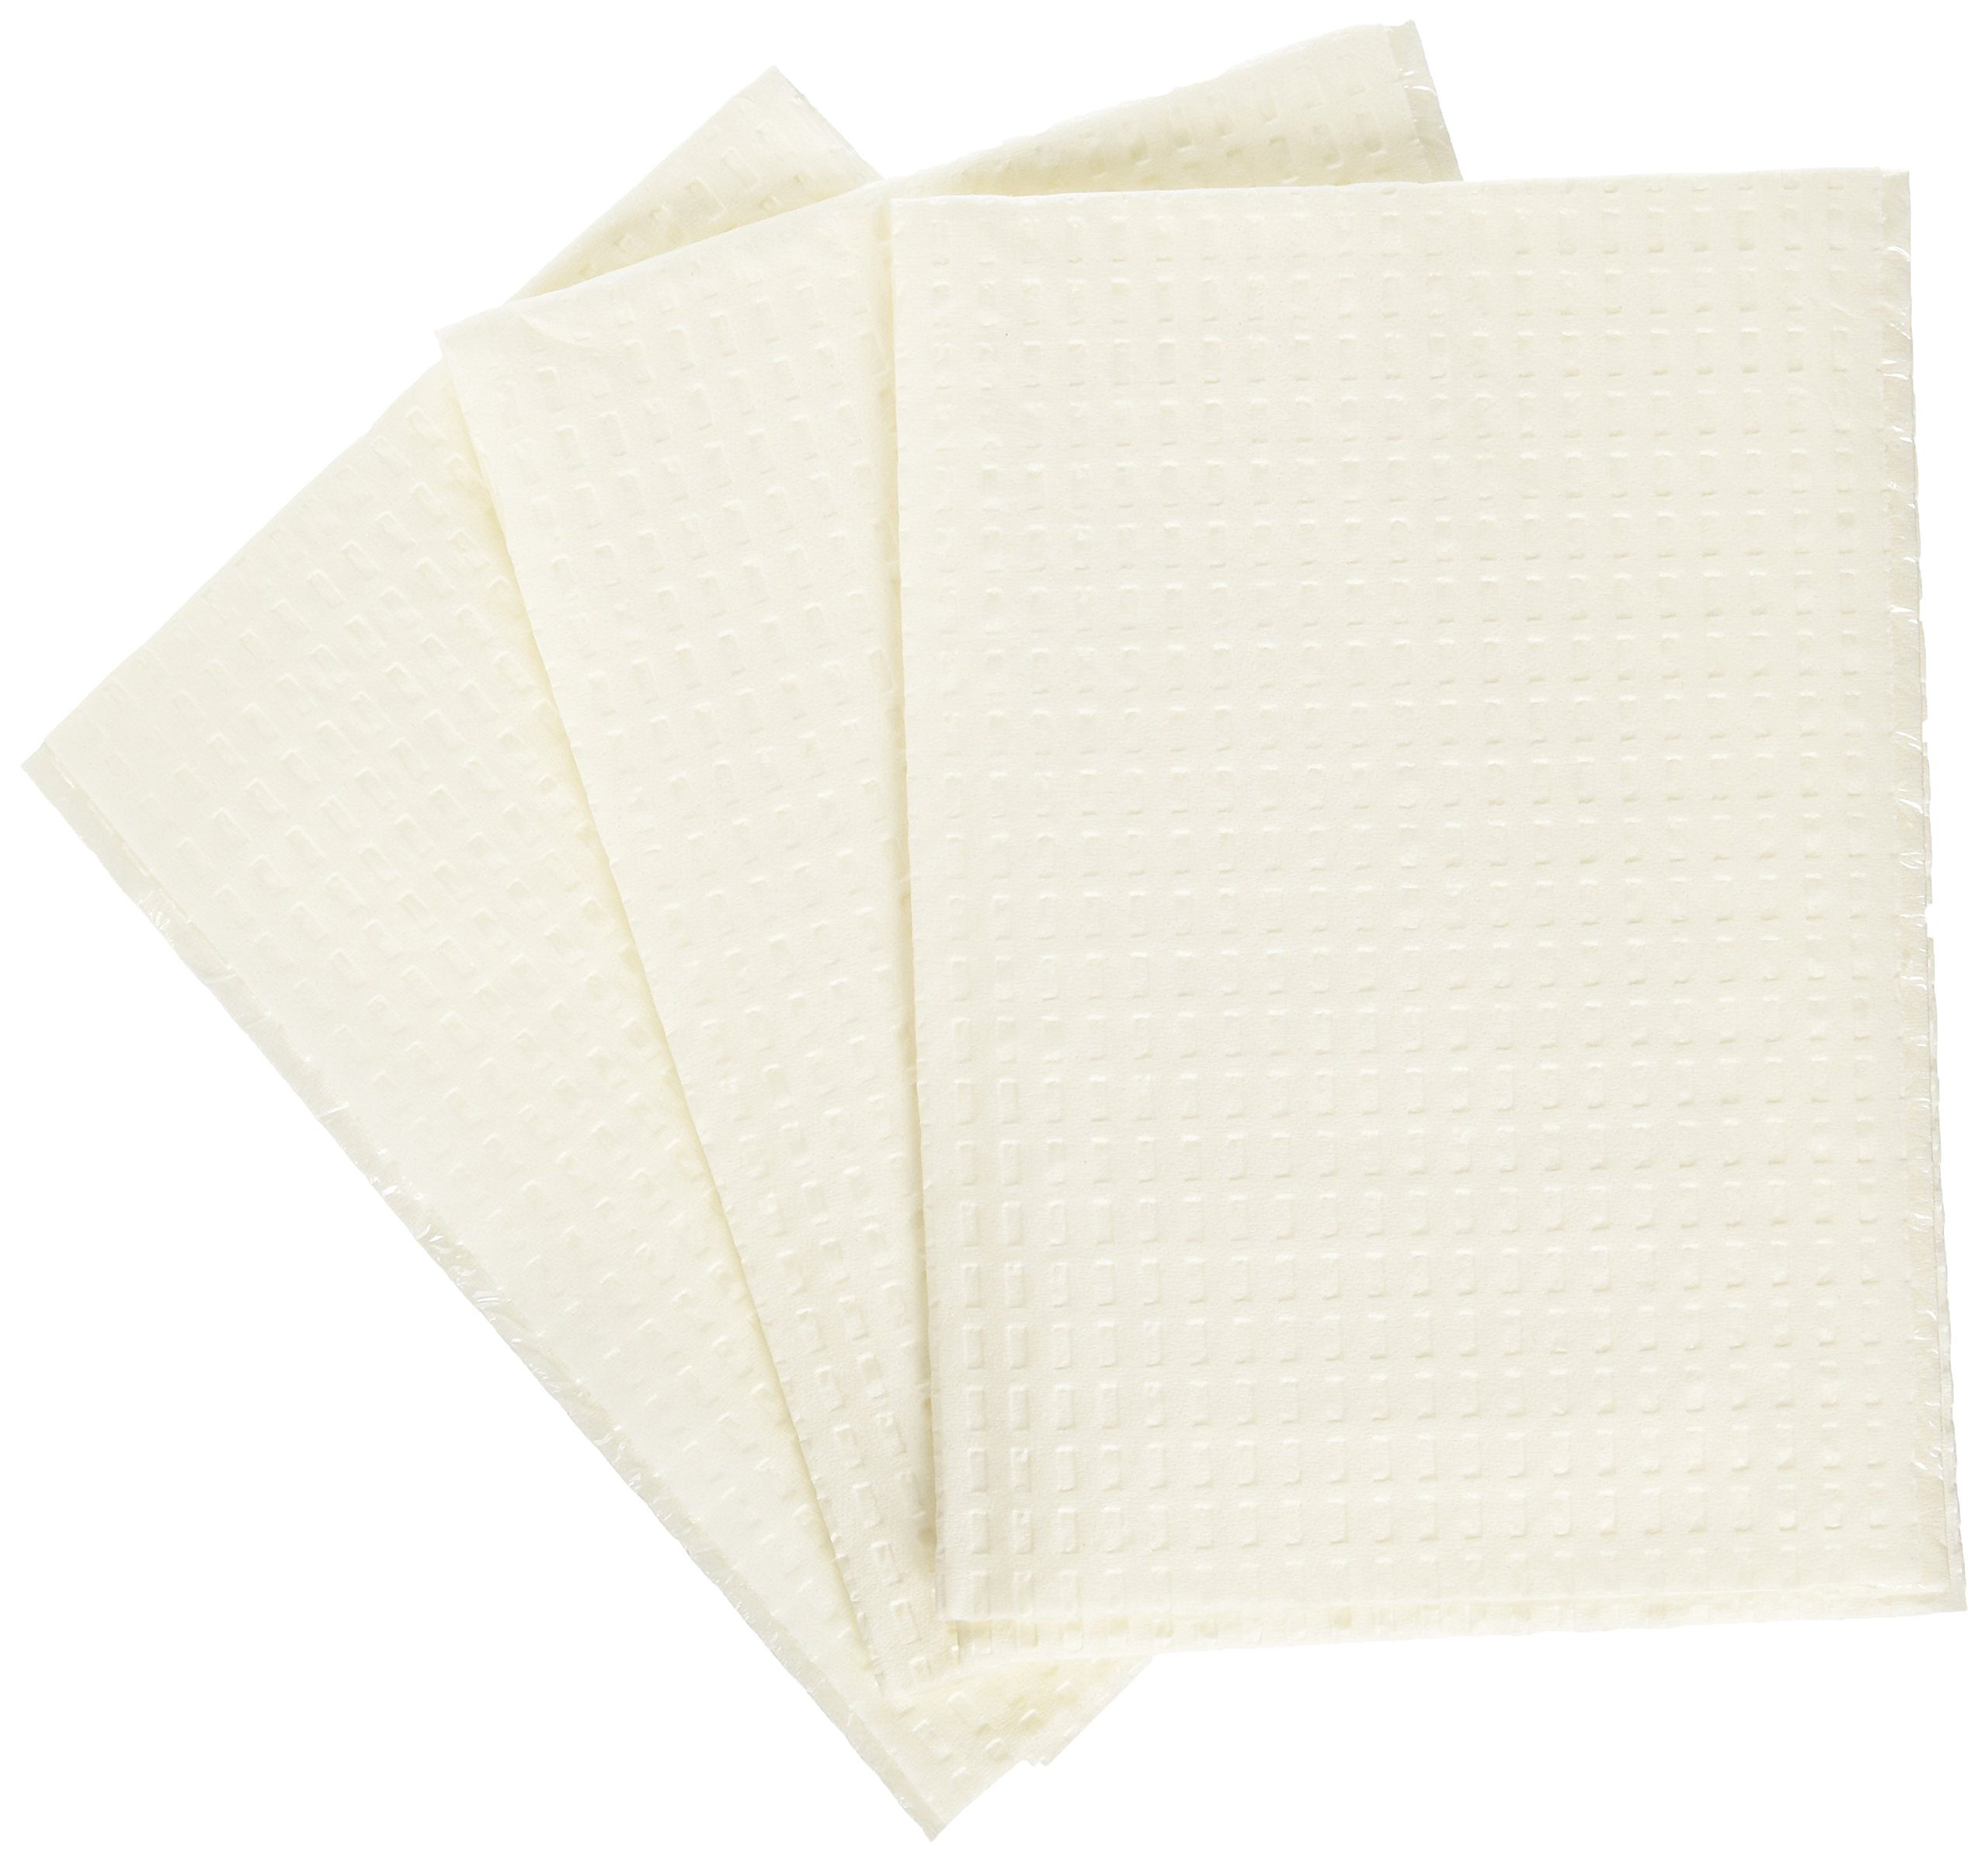 Medline NON24356W 2-Ply Tissue/Poly Professional Towels, 13'' x 18'', White (Pack of 500)